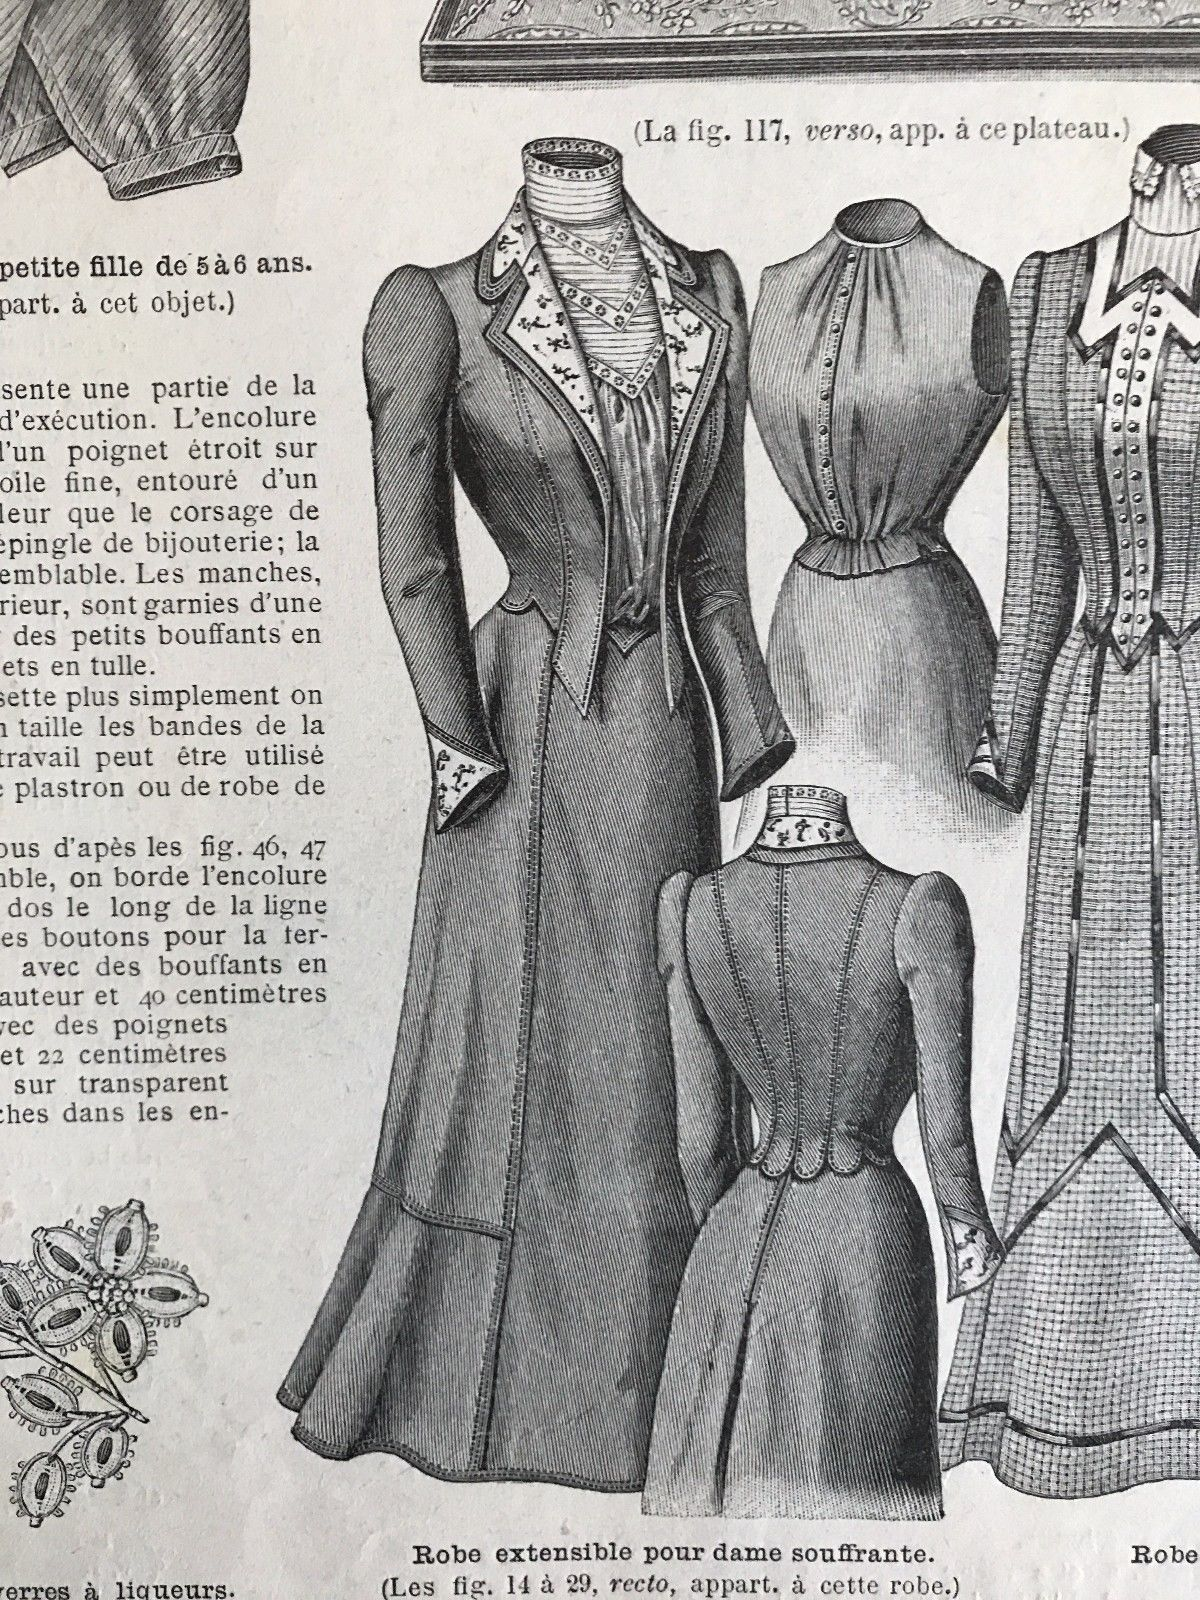 Dressing Dans Petite Piece french mode illustree sewing pattern june 30,1901 princess